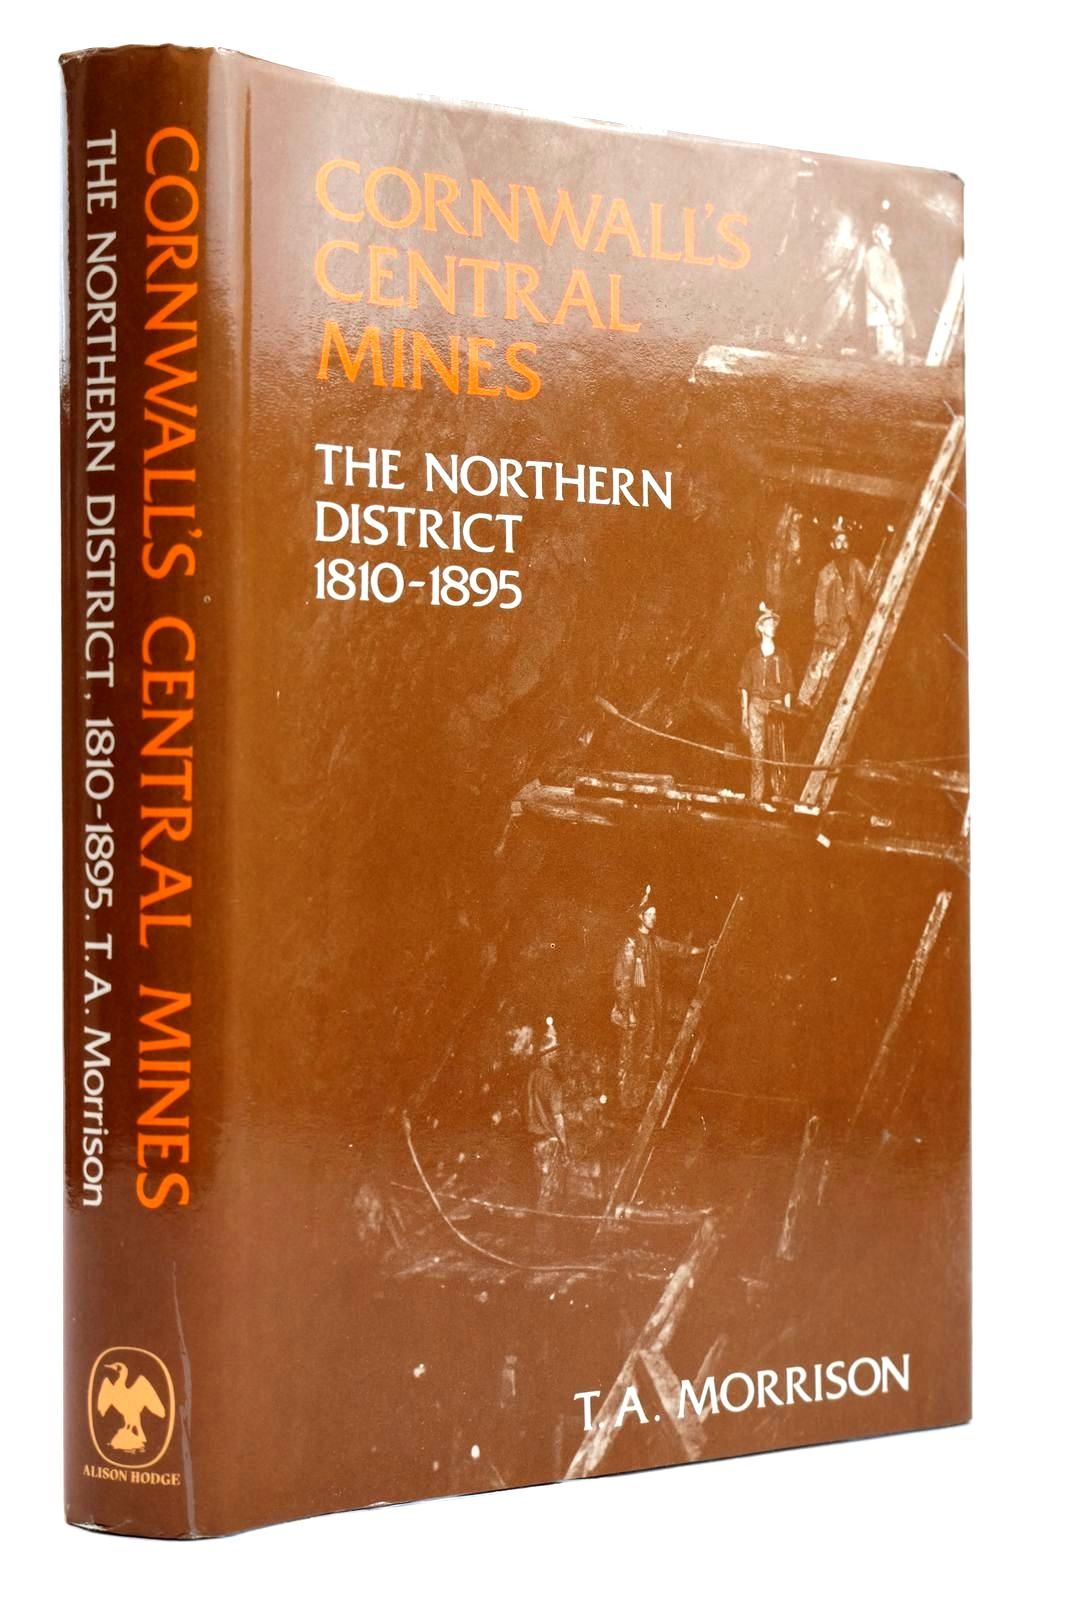 Photo of CORNWALL'S CENTRAL MINES THE NORTHERN DISTRICT- Stock Number: 2131982